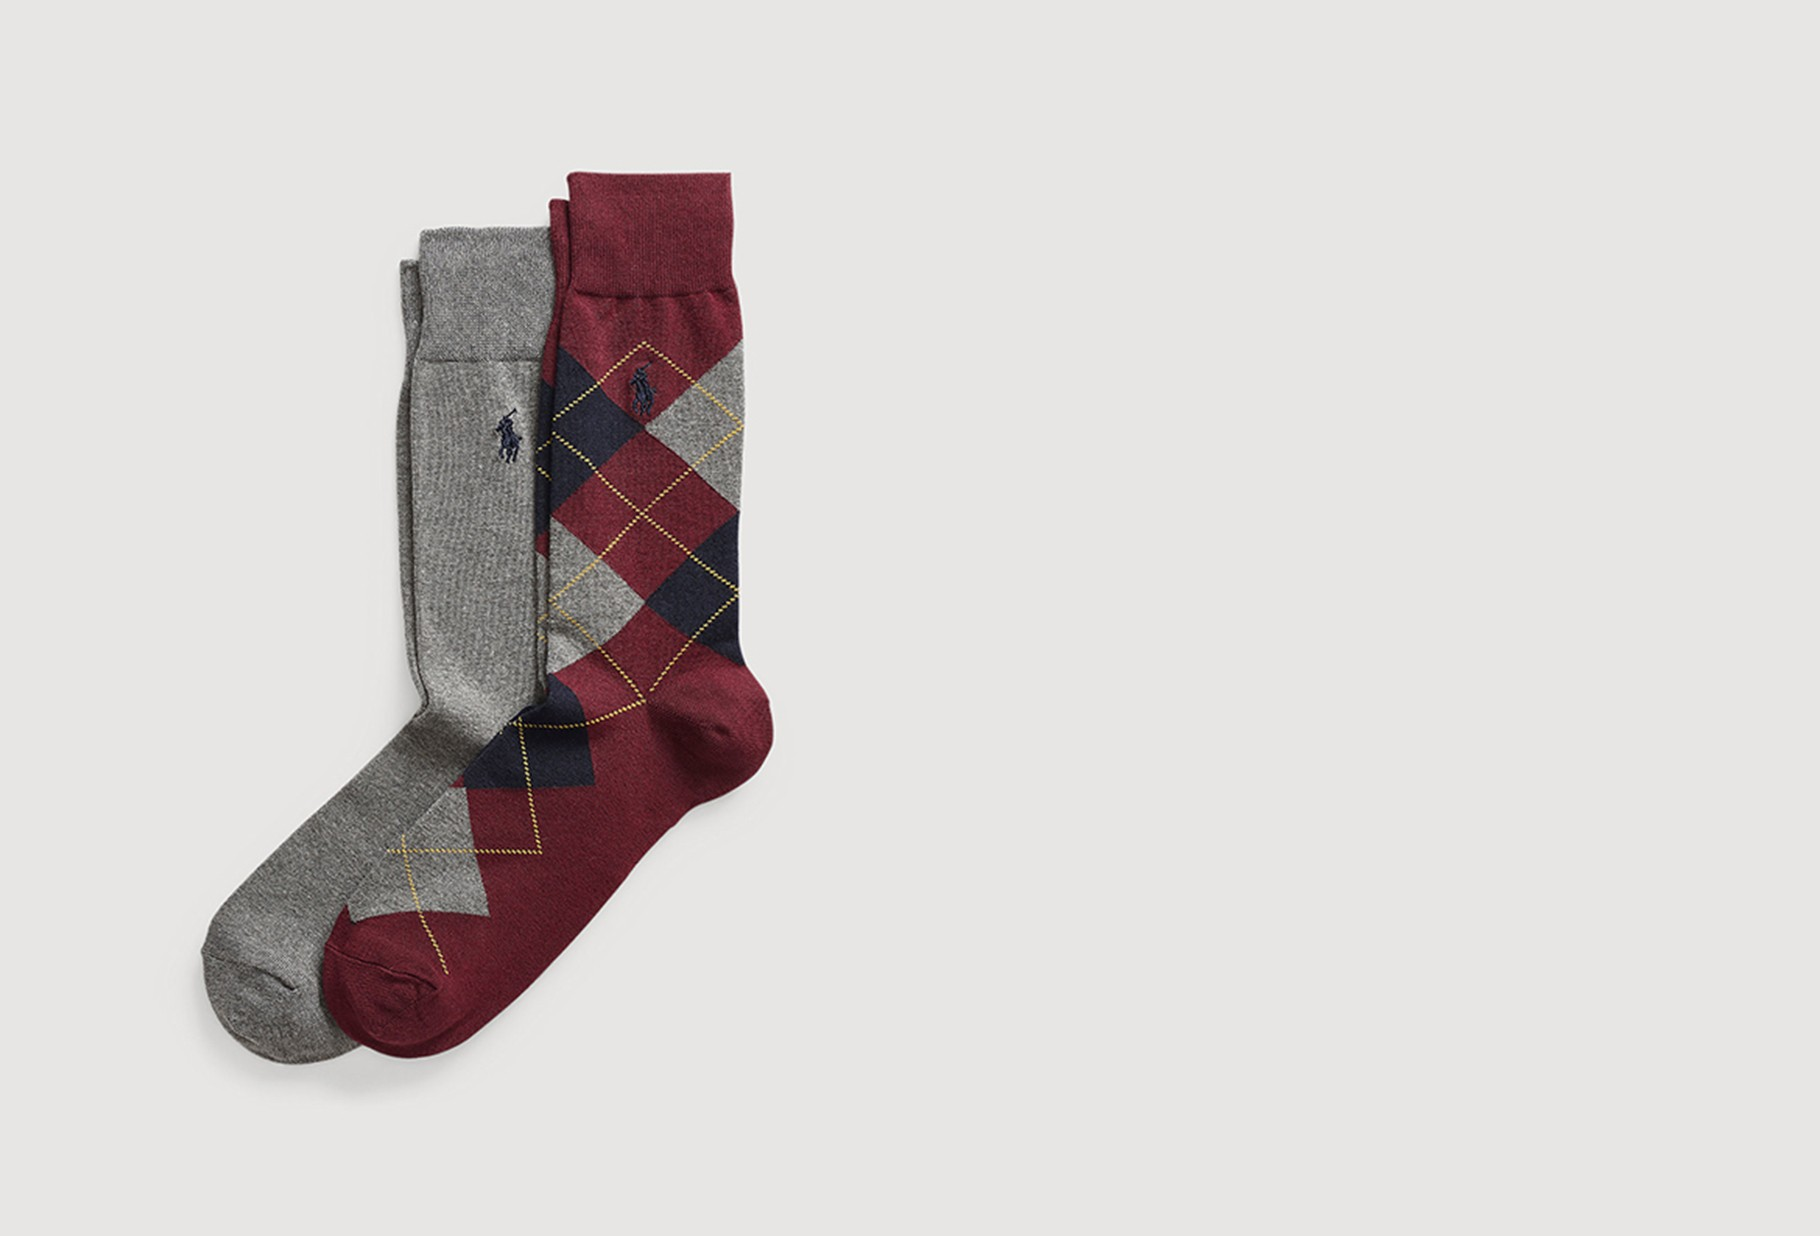 POLO RALPH LAUREN / Burlington 2 pack socks Burgundy / grey